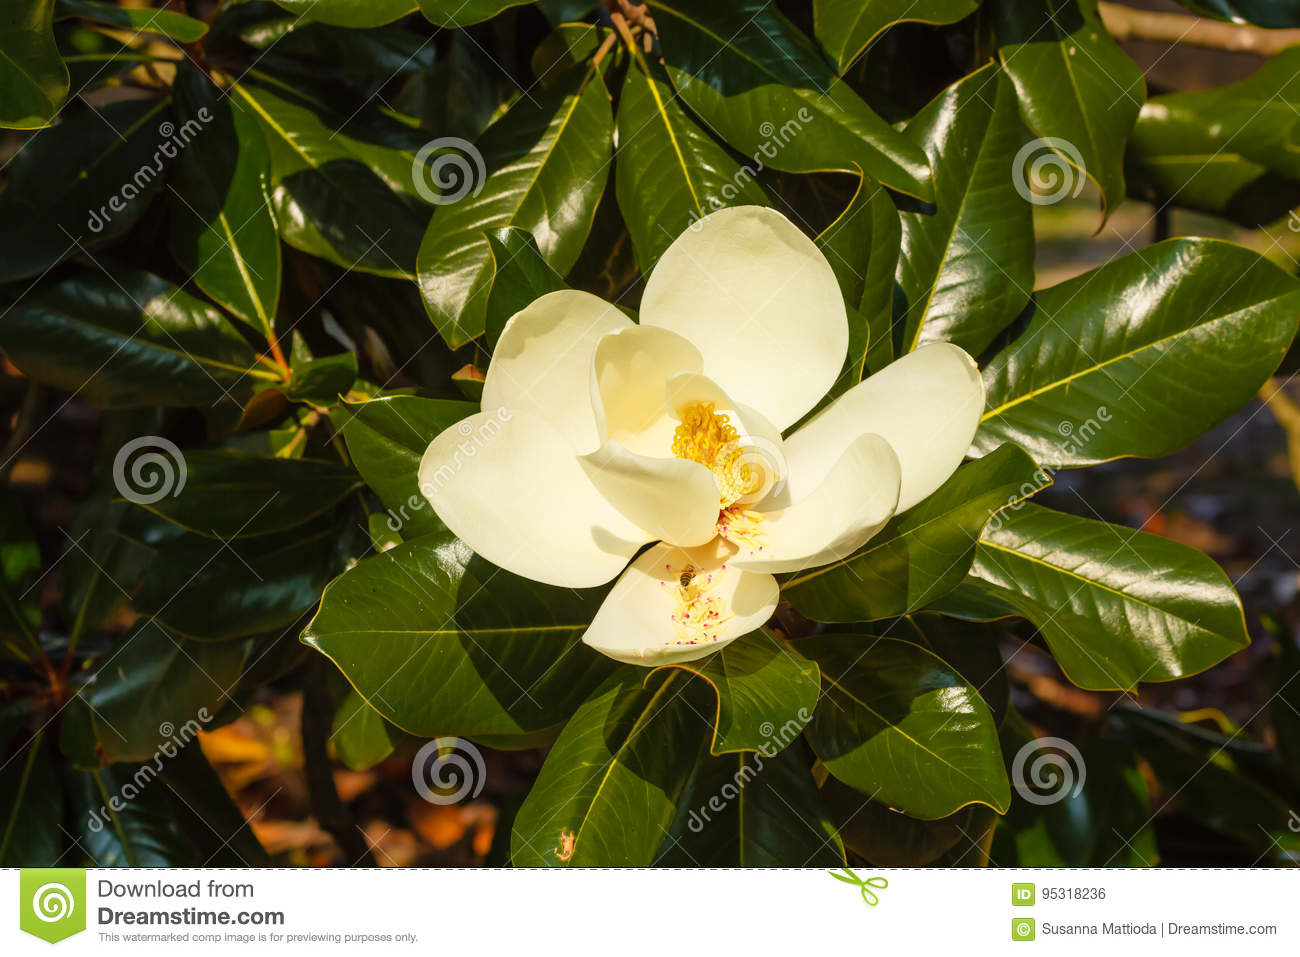 Close Up Of White Flower Of Magnolia Grandiflora With Its Pistol